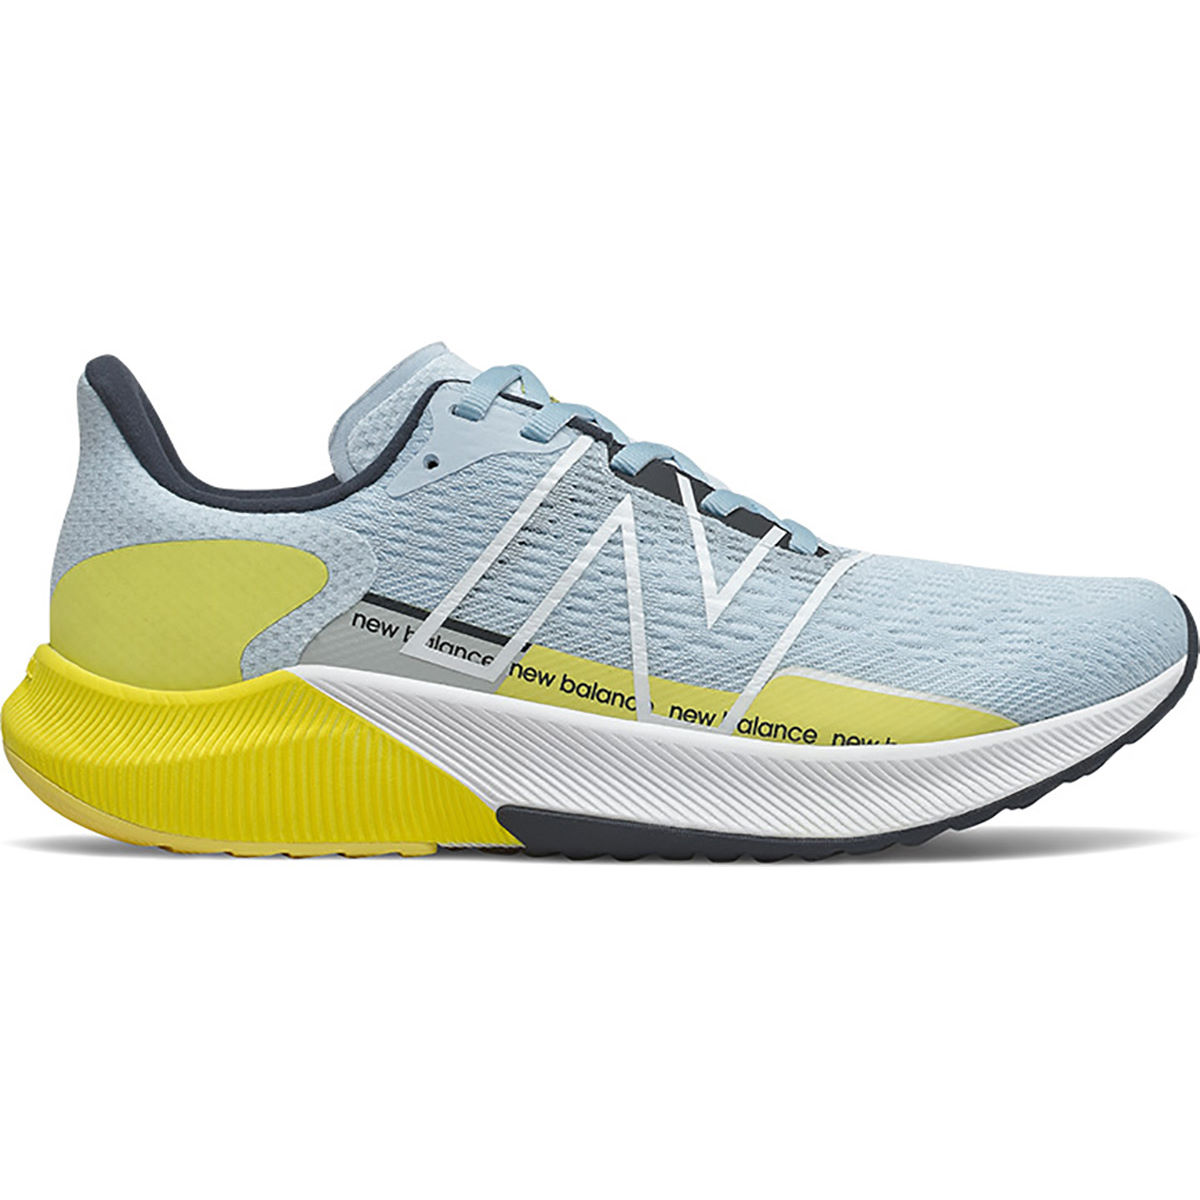 New Balance Womens Fuelcell Propel V2 Running Shoes - Uk 8